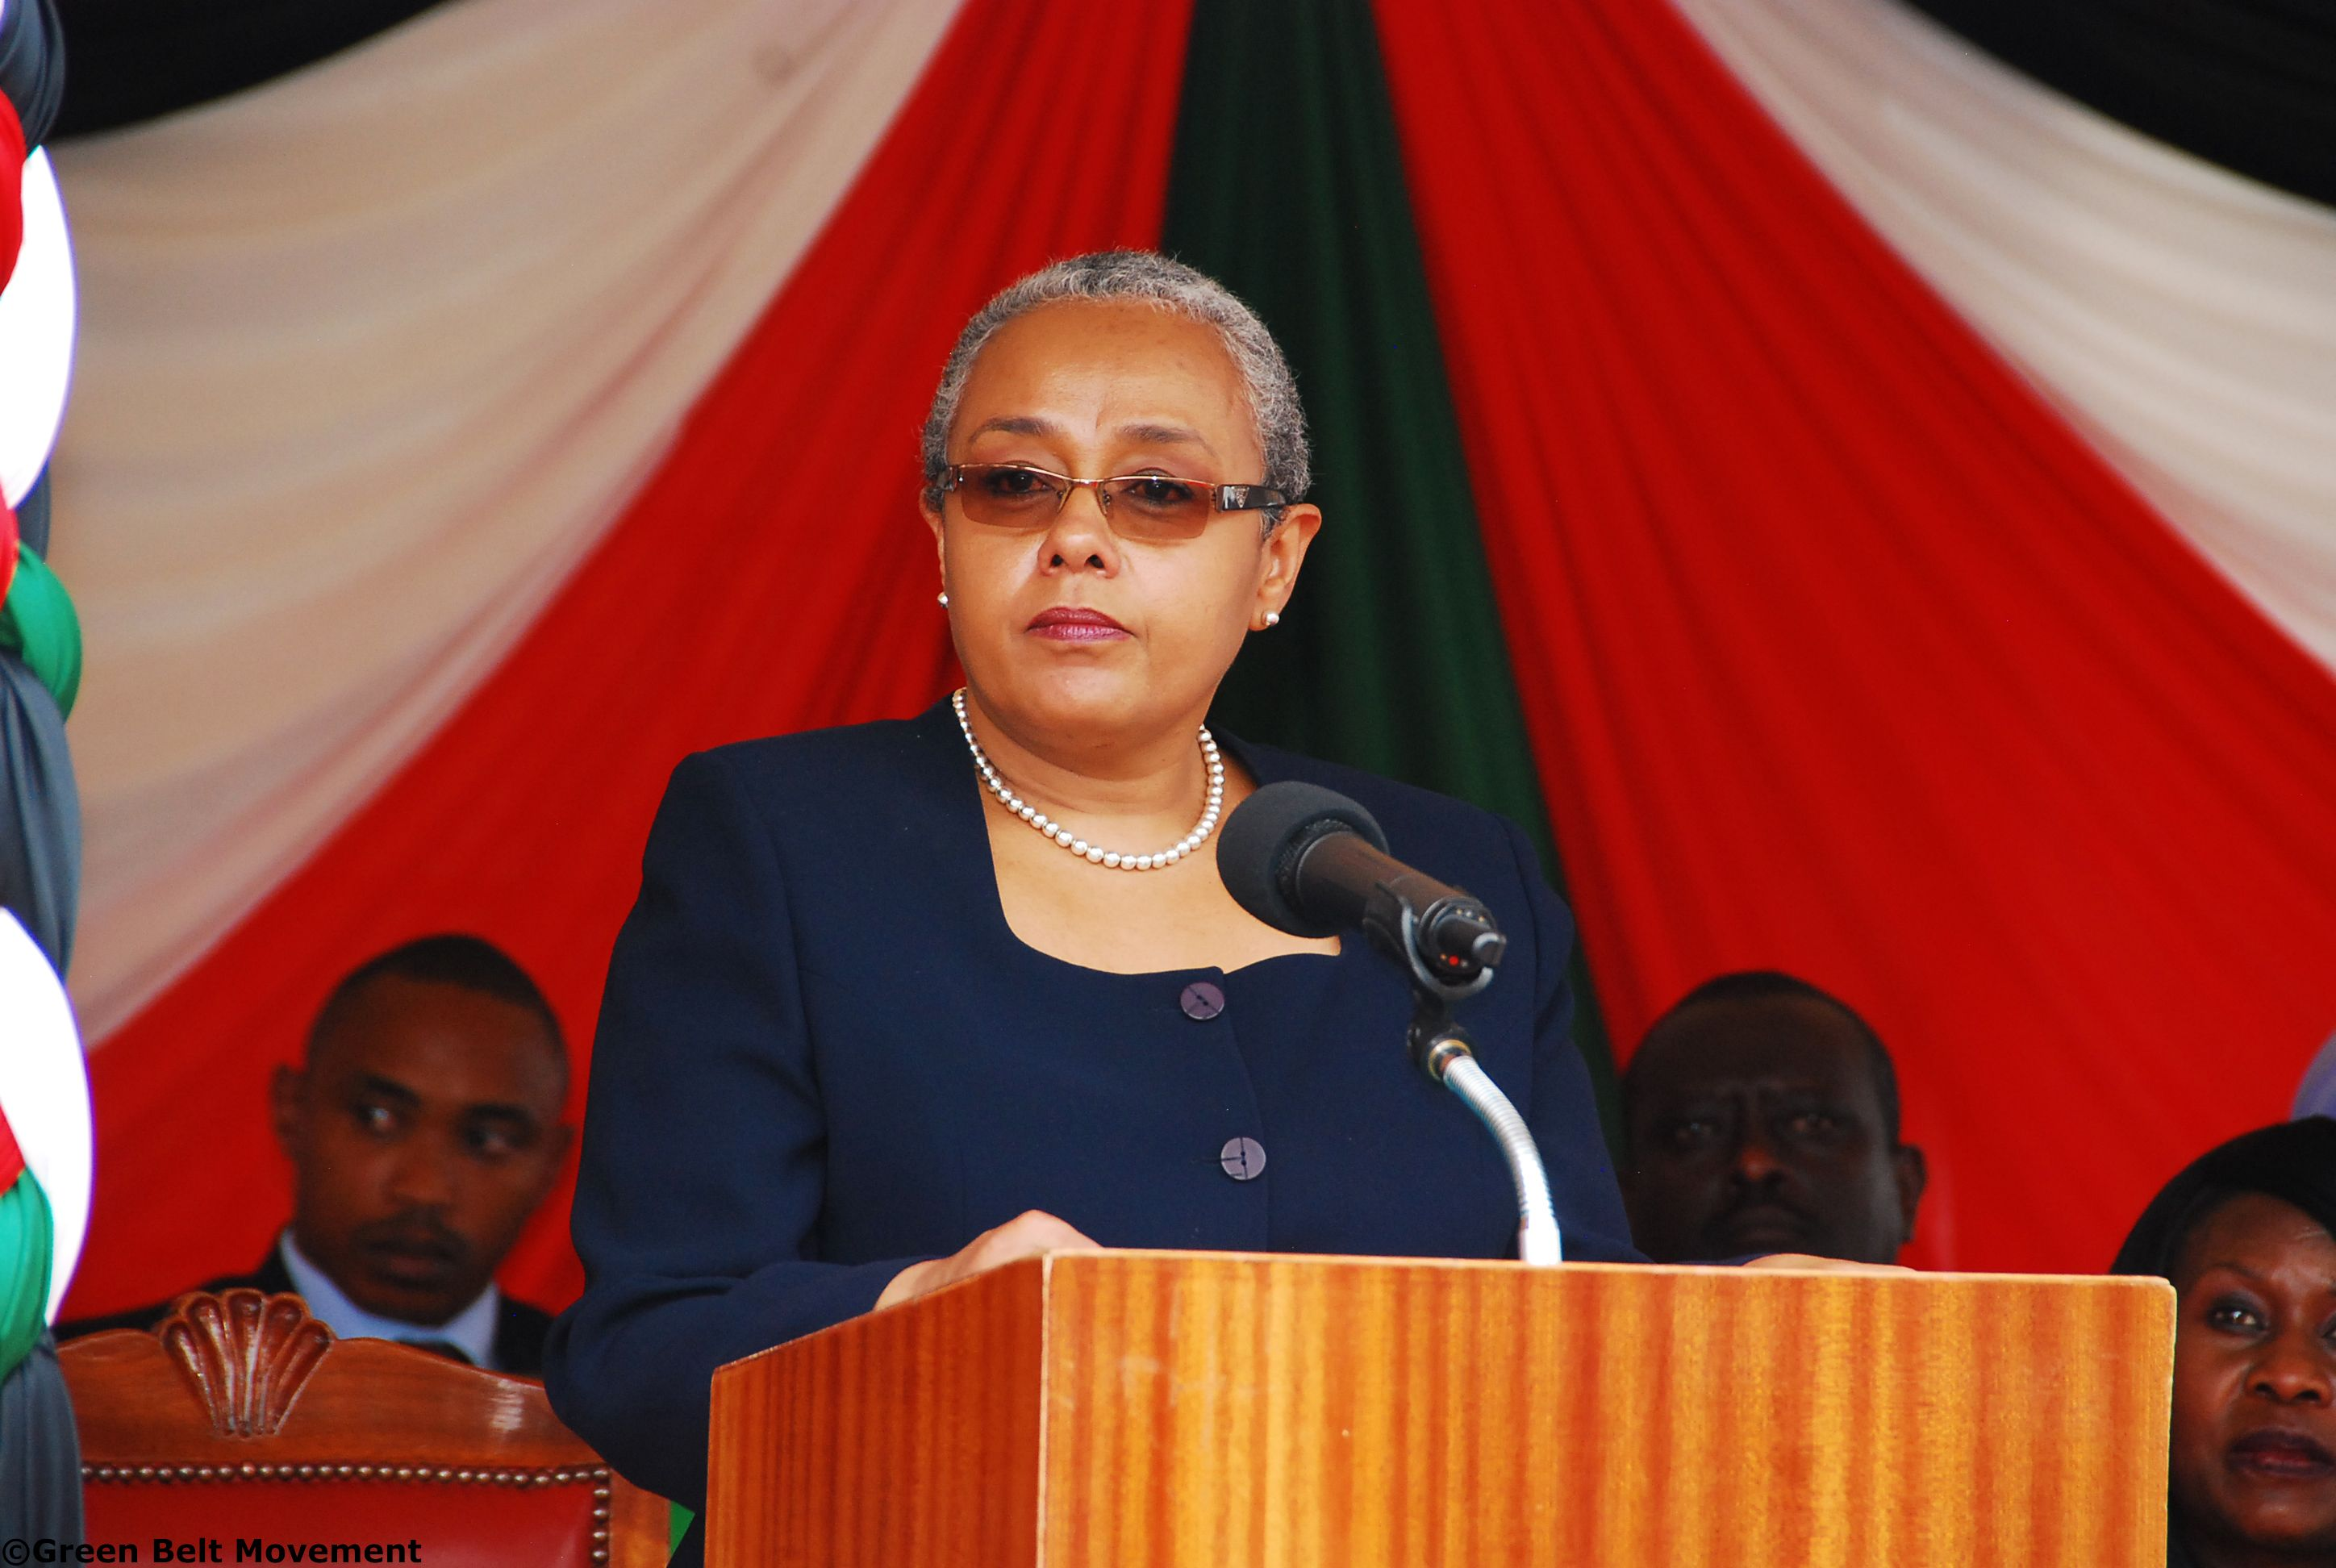 Her Excellency Margaret Kenyatta, First Lady of the Republic of Kenya addressing the assembled guests